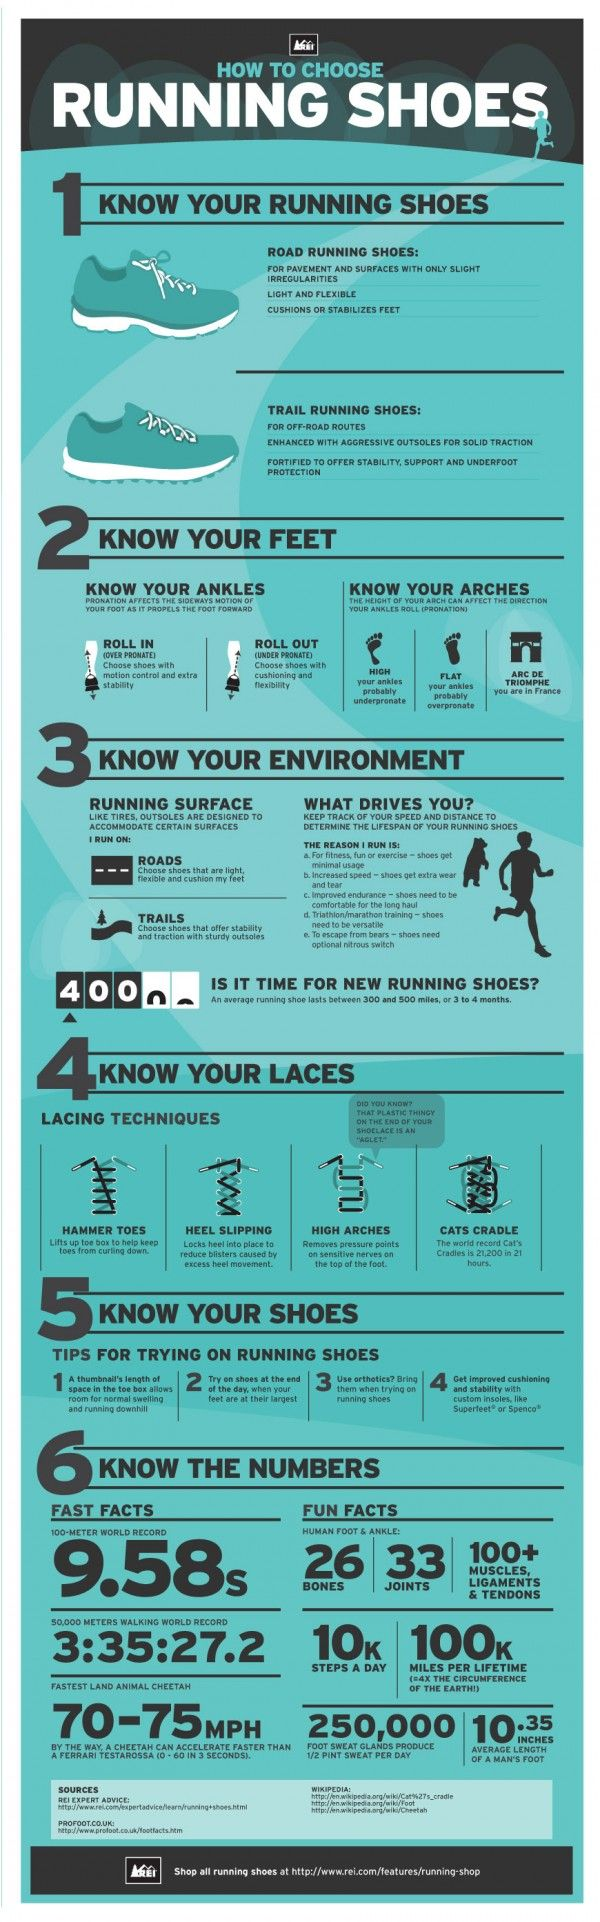 Best Running Shoes for Your Feet